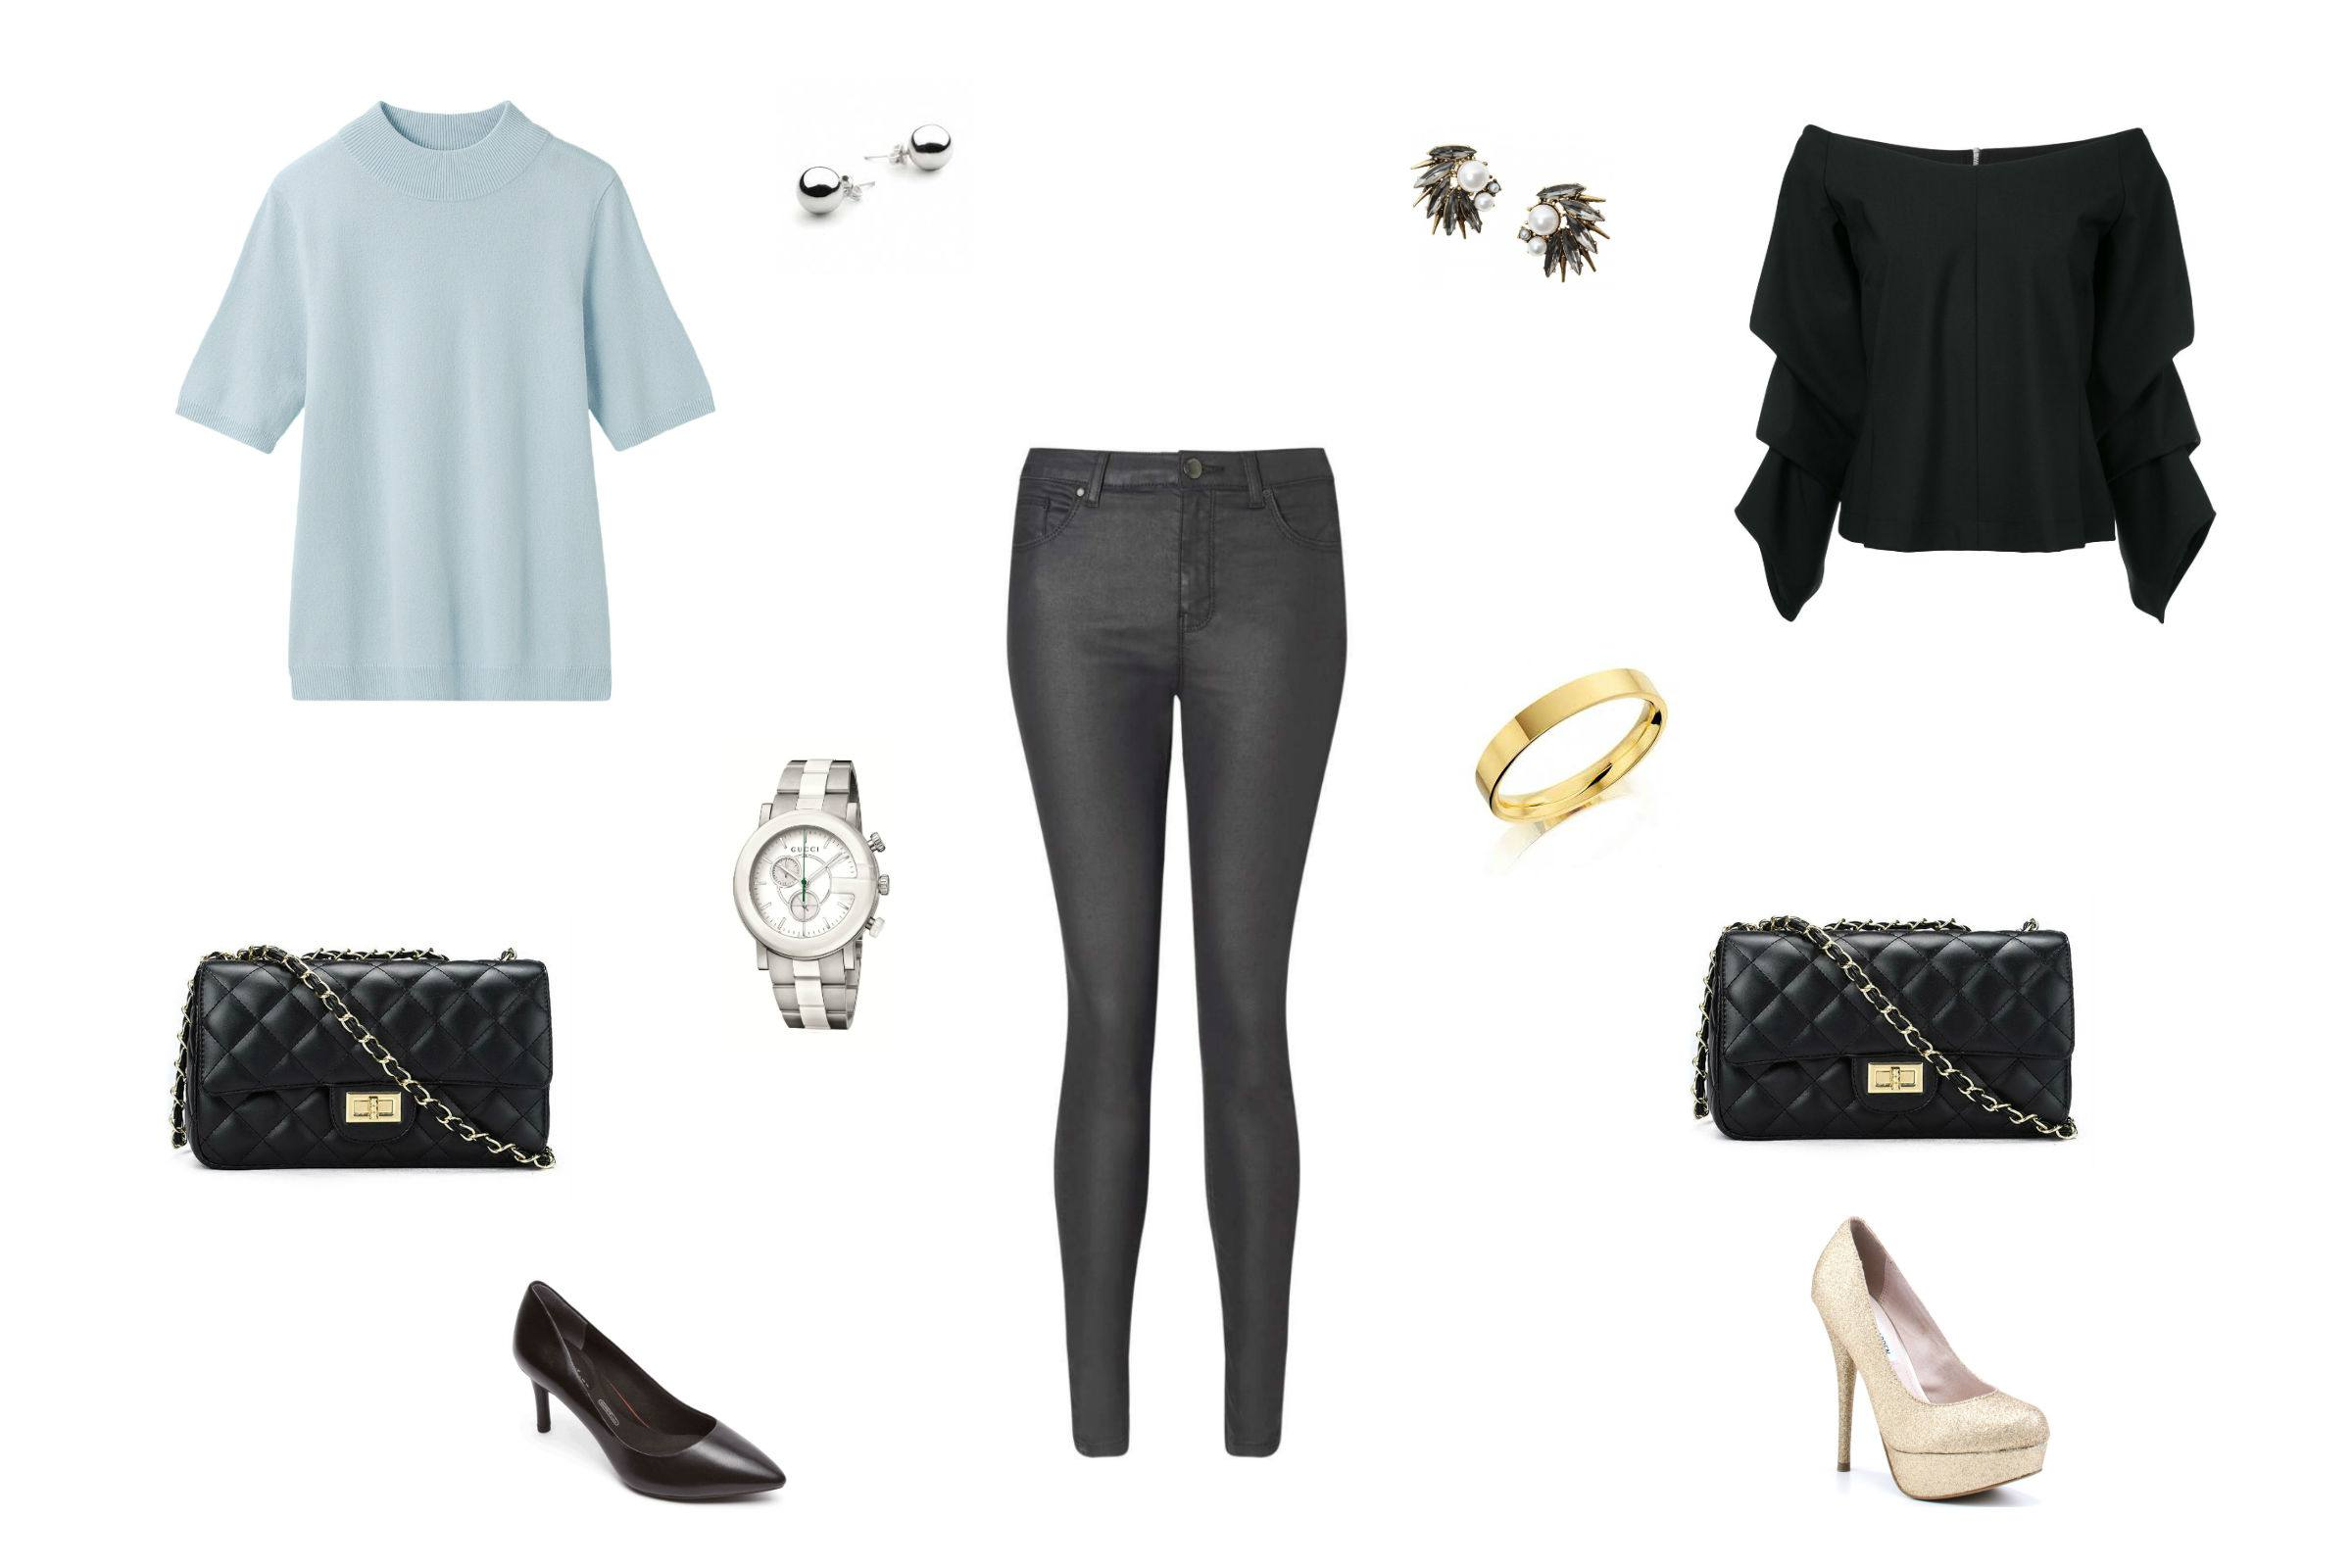 146912e283a 10 Ways to Dress Up Jeans for a Night Out